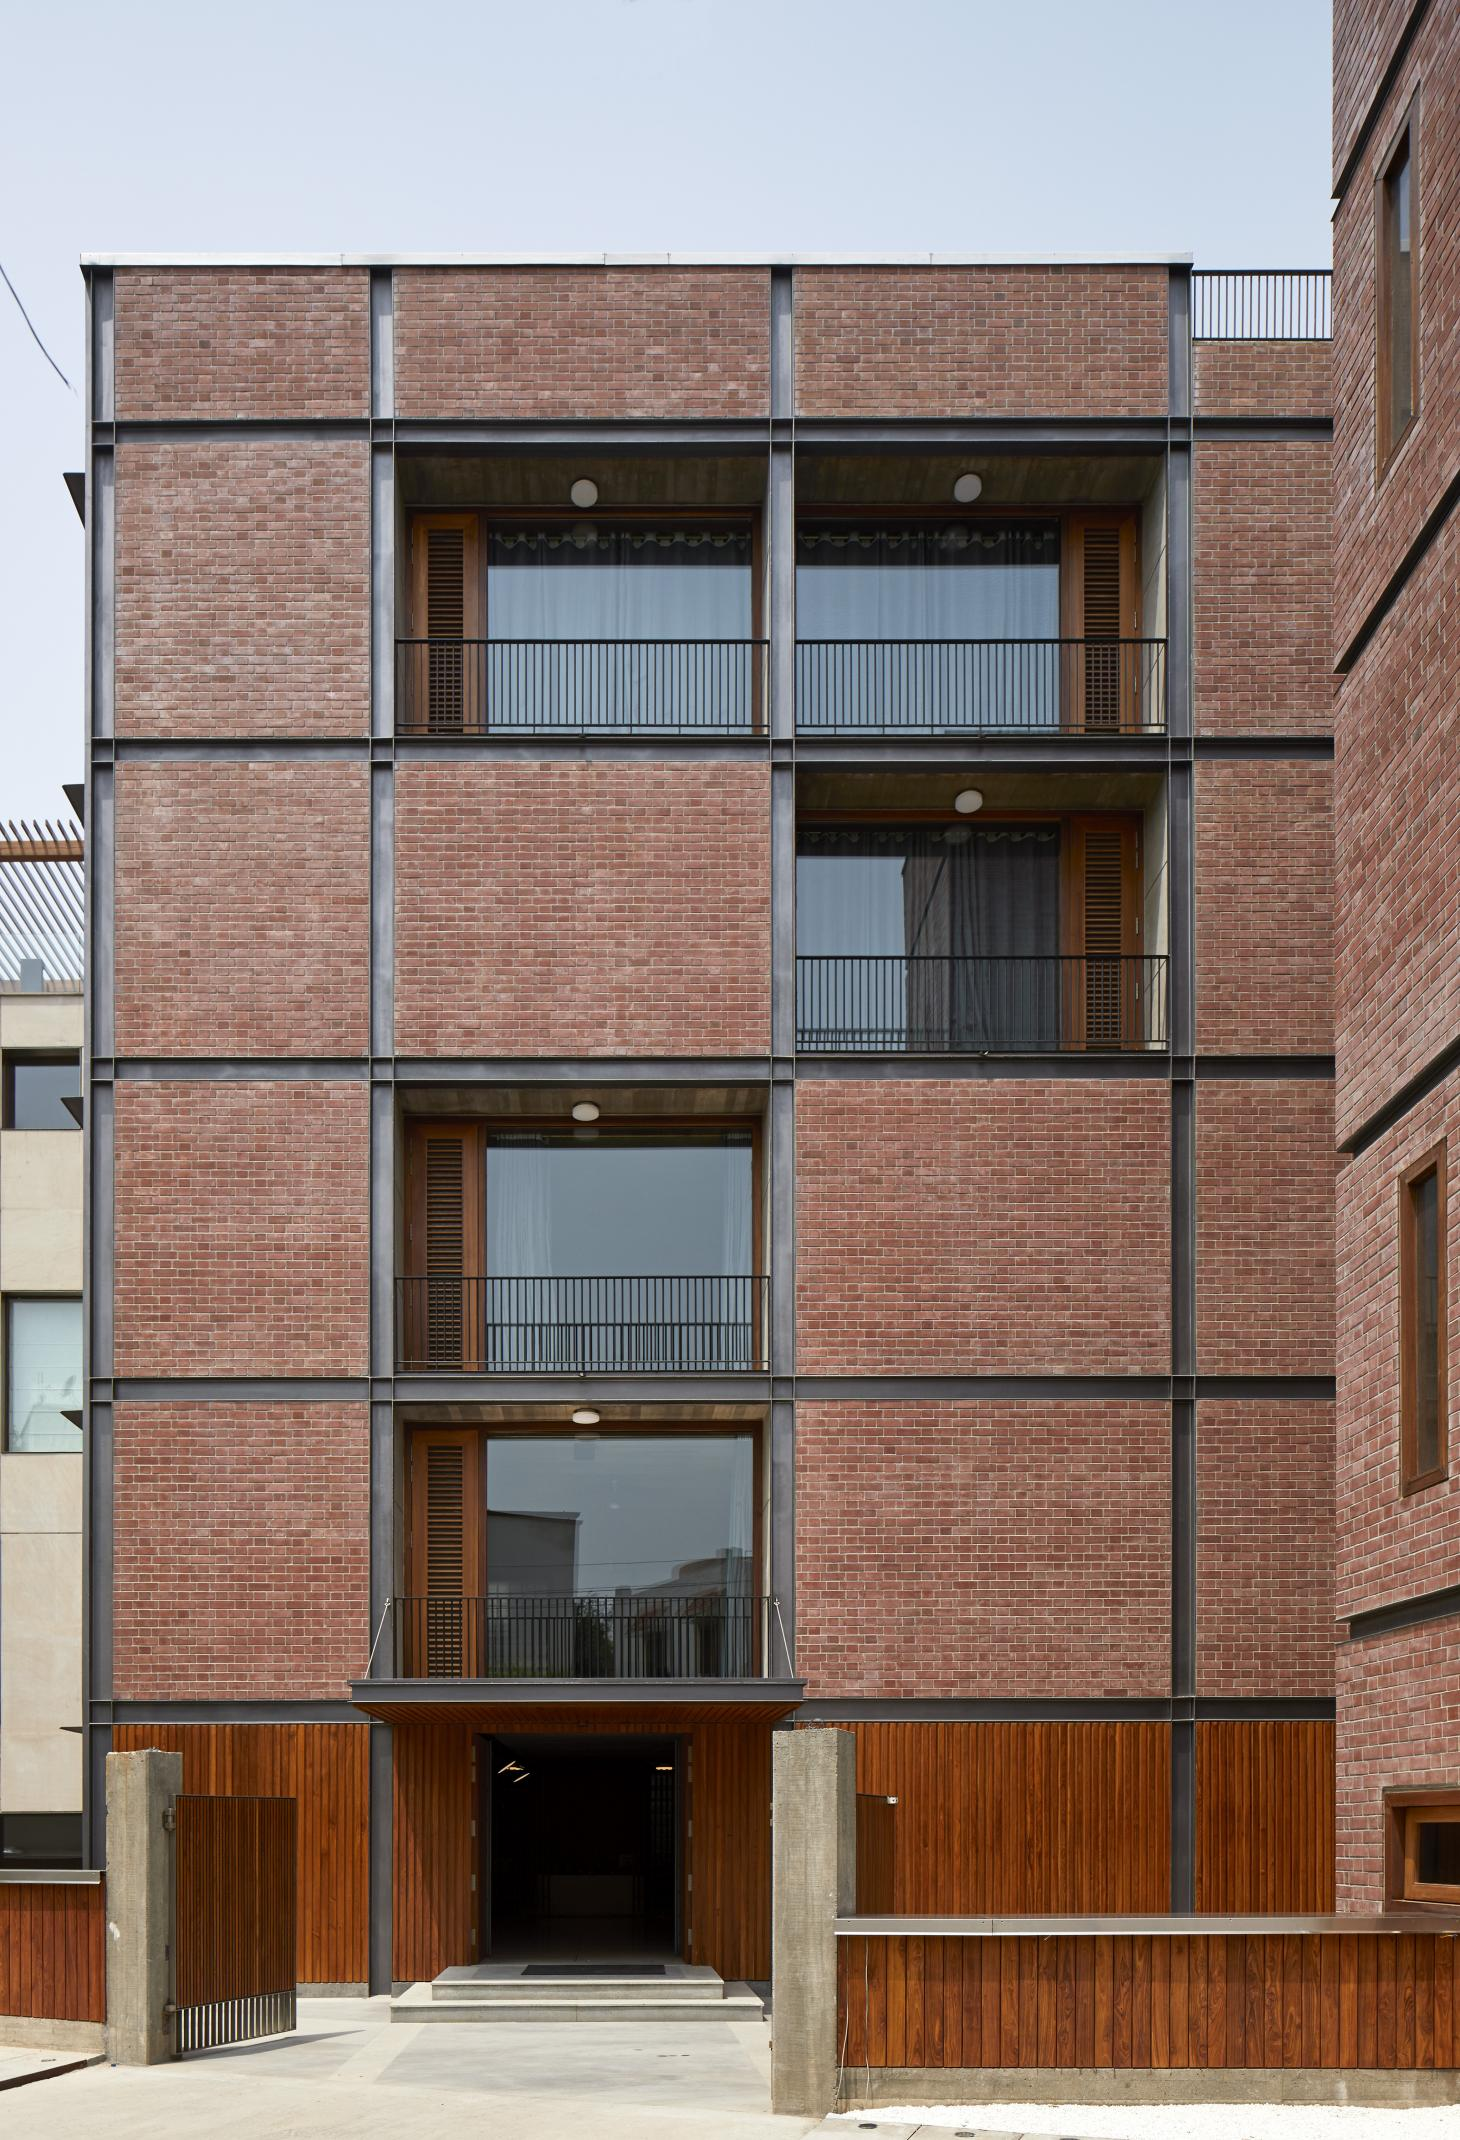 Brick House designed by RKDS in Delhi